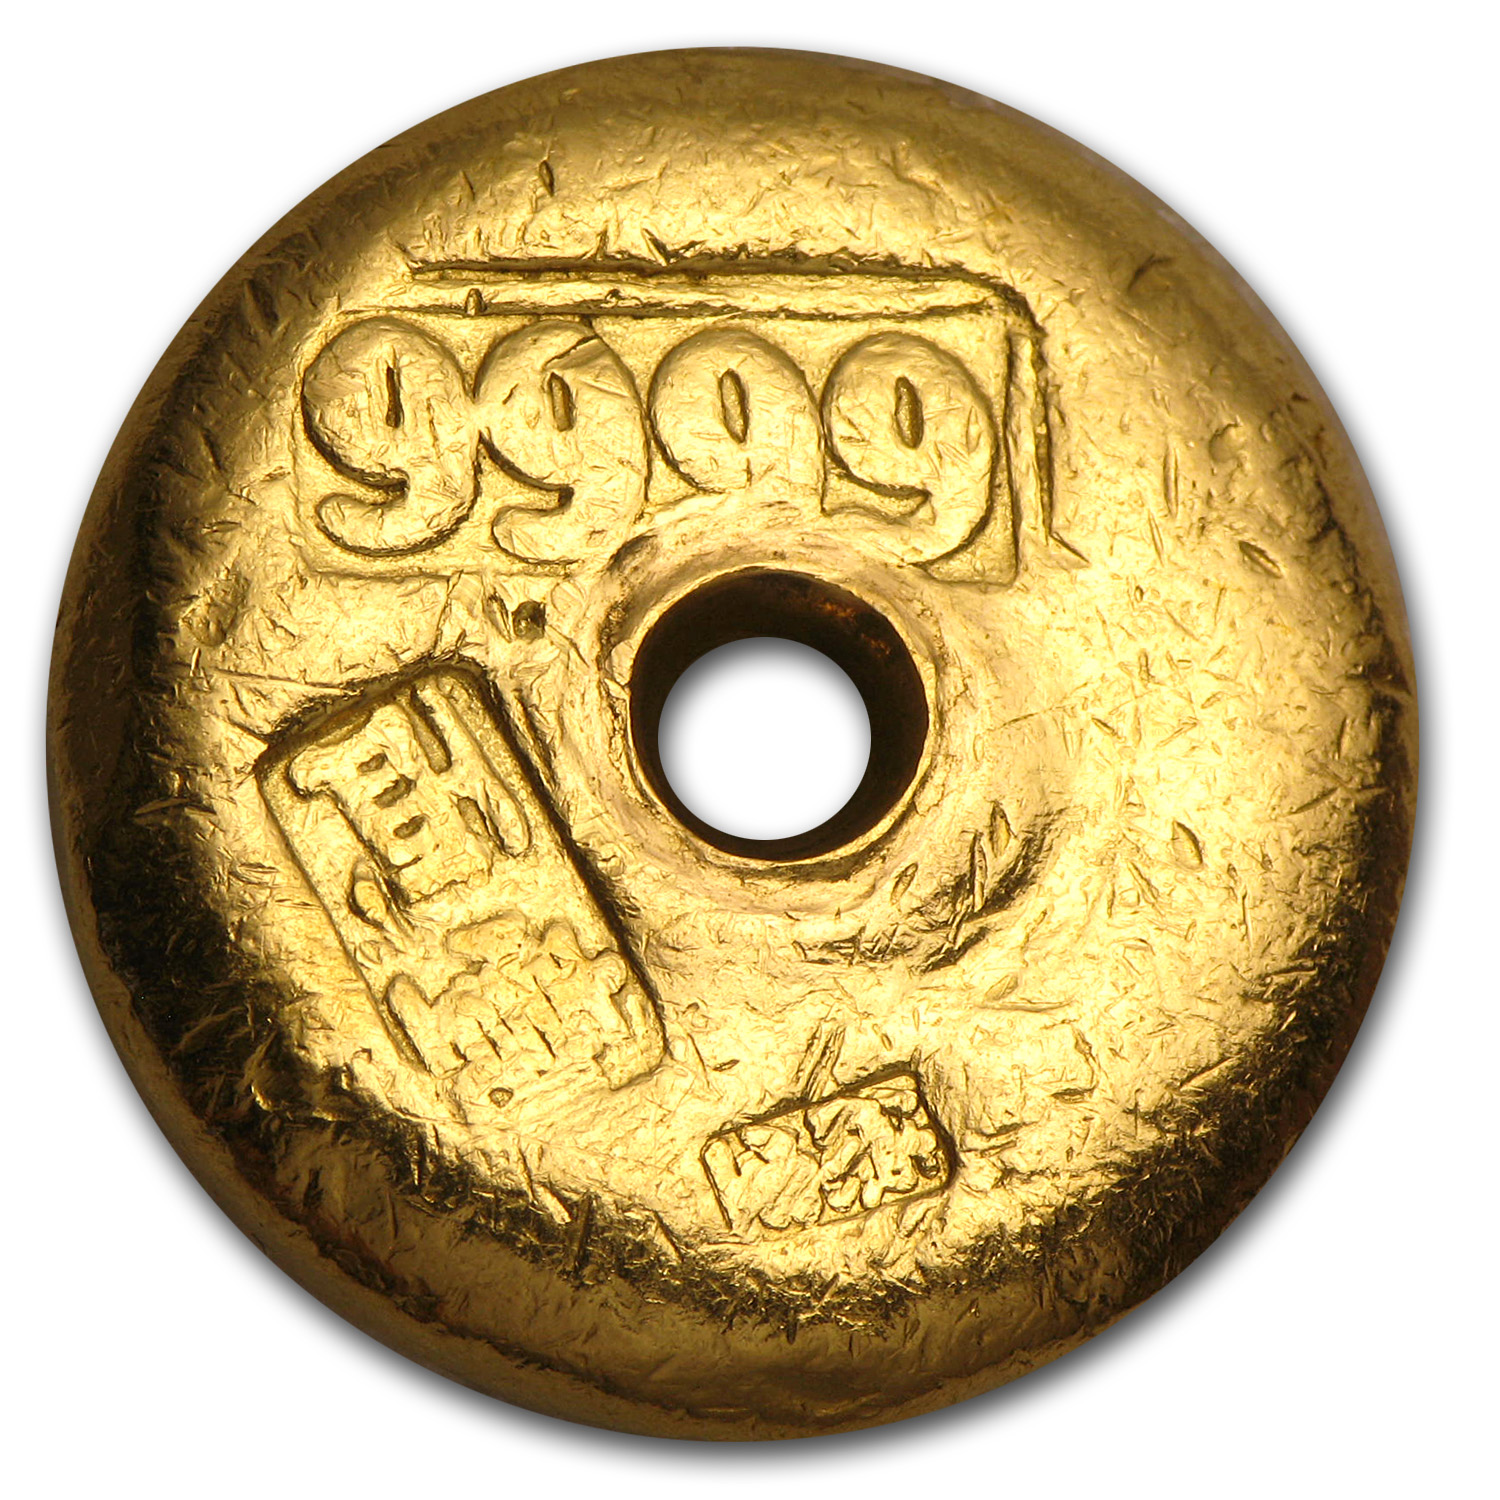 1 Tael Gold Rounds - Chinese Button (Type 1, 1.2057 oz)